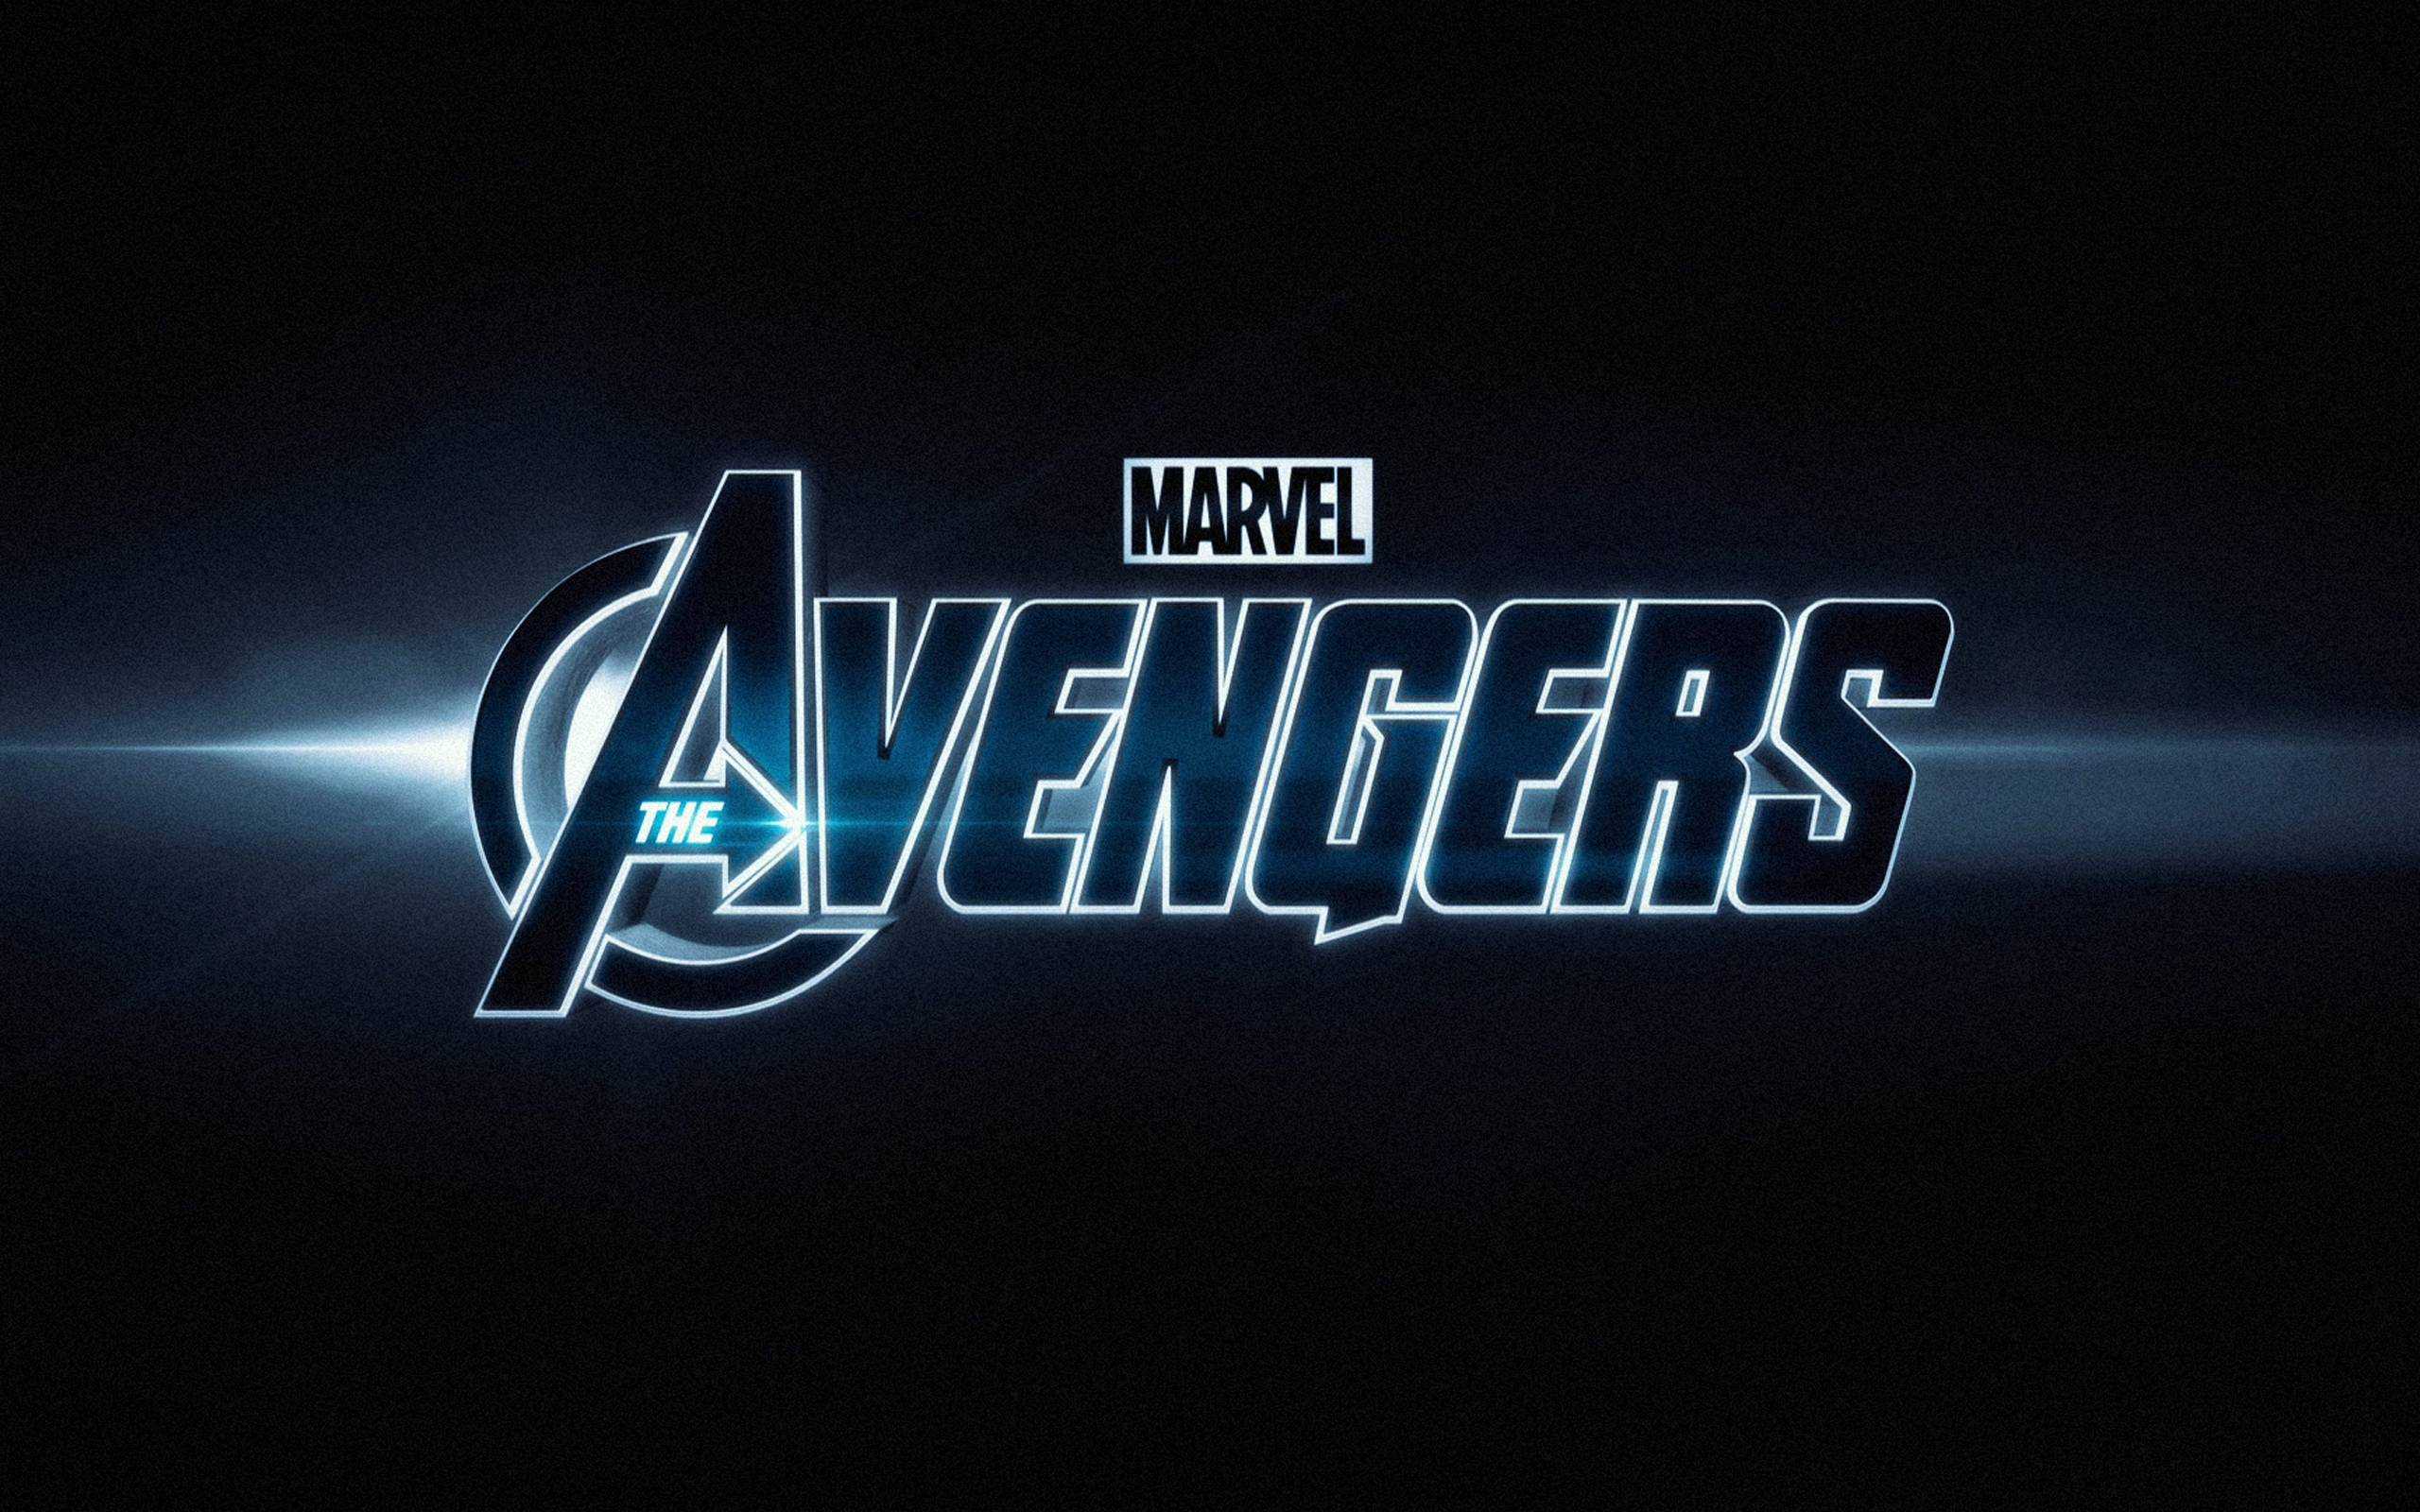 Avengers Logo Wallpapers - Wallpaper Cave